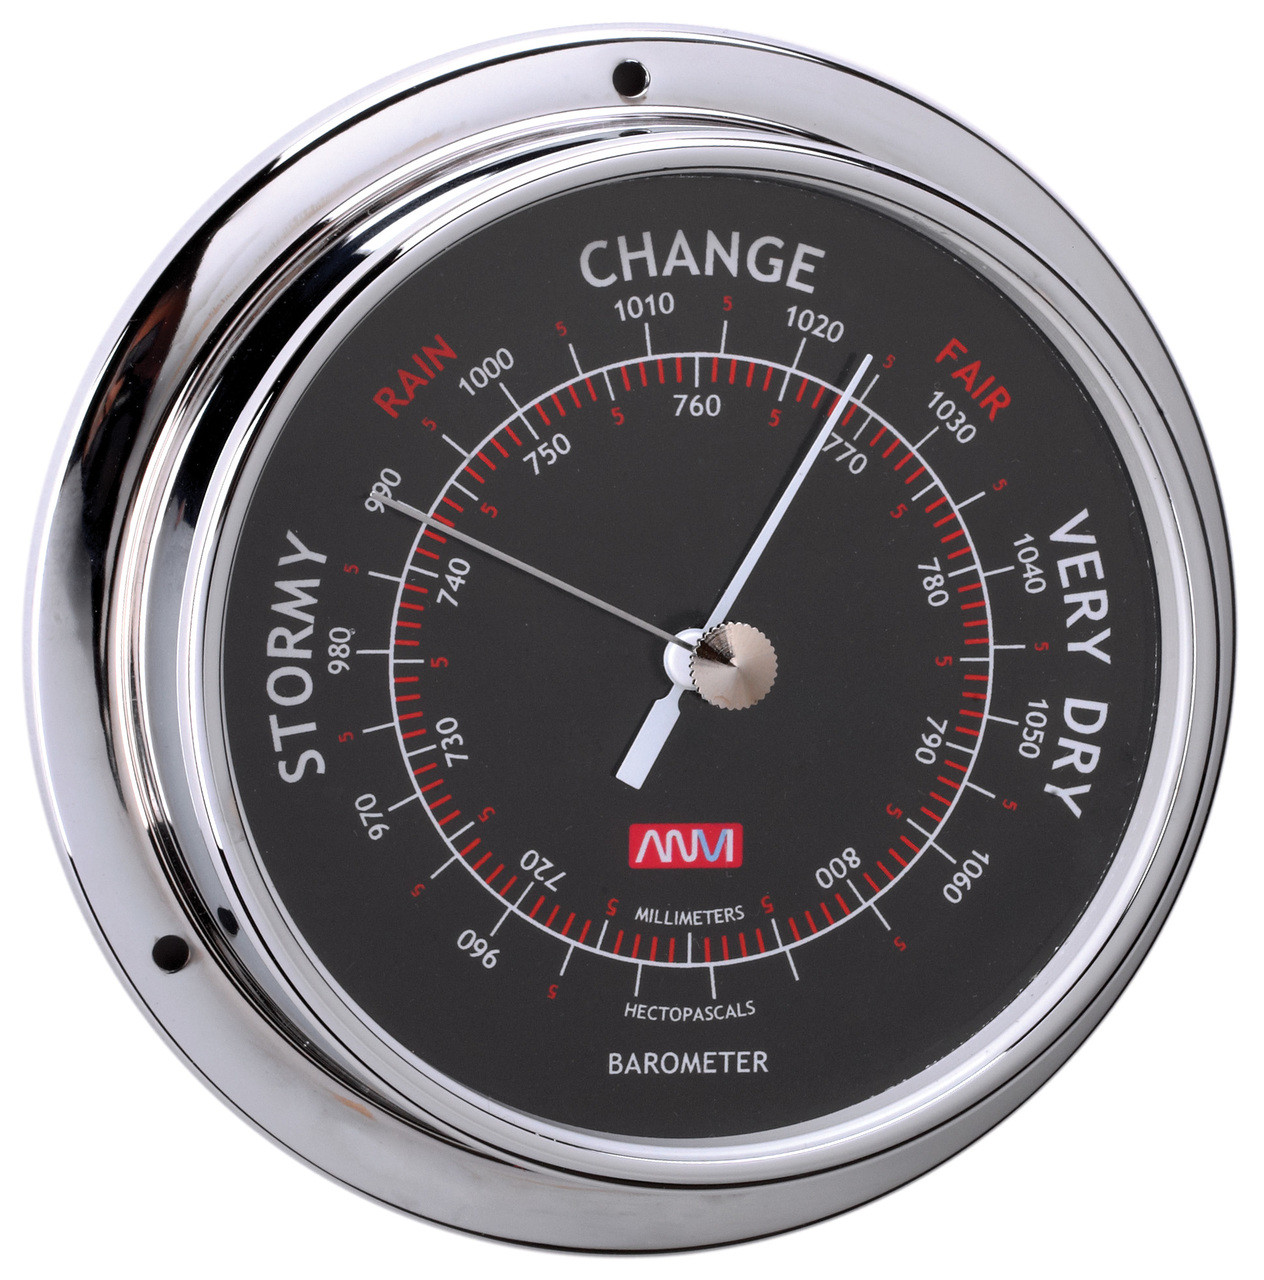 Barometer - 95mm Chrome Plated Brass with Black Face